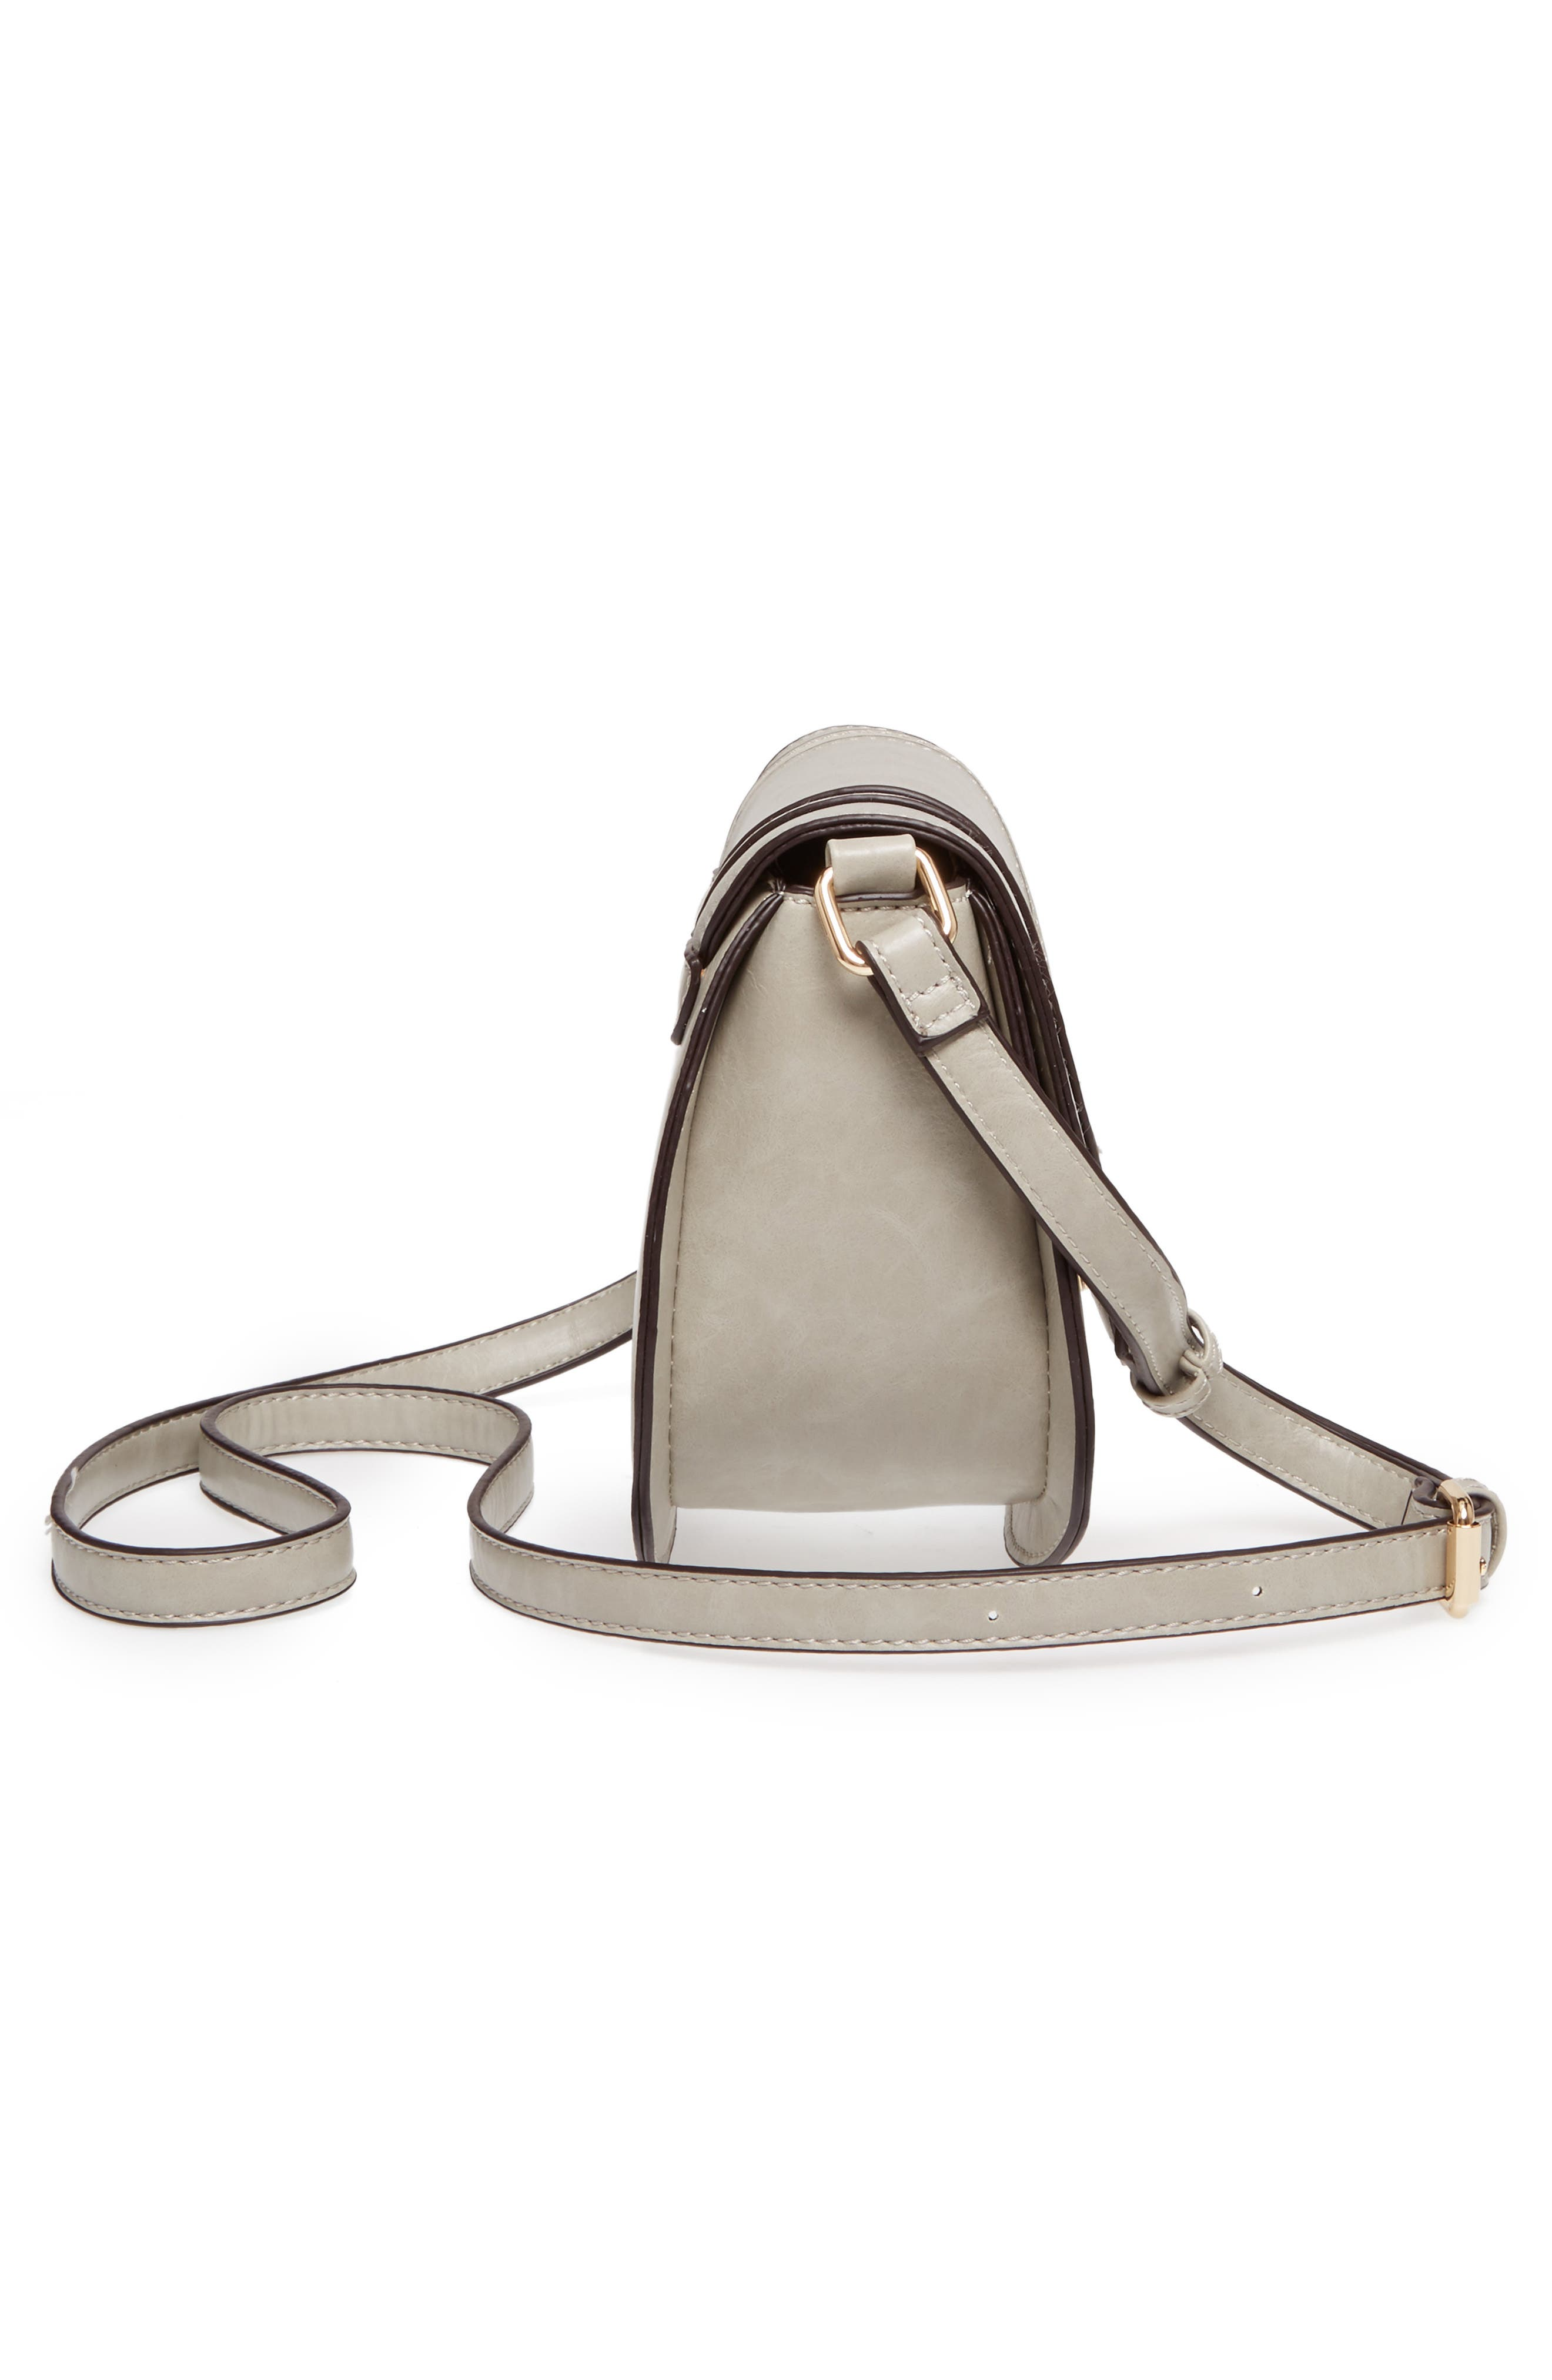 Bryson Faux Leather Crossbody Bag,                             Alternate thumbnail 5, color,                             025